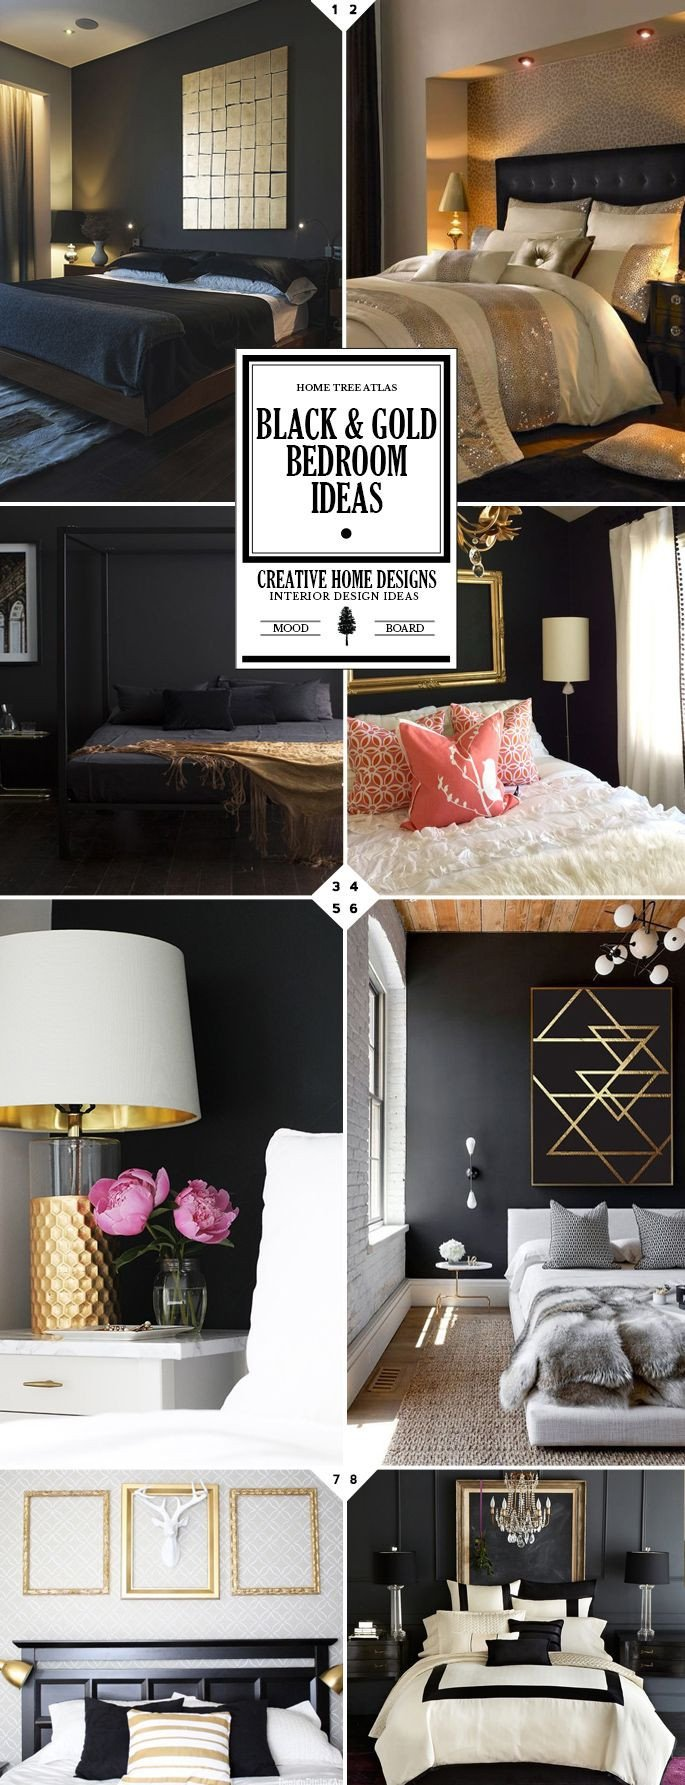 Black and Gold Bedroom Decor Fresh Style Guide Black and Gold Bedroom Ideas Bedroom Ideas